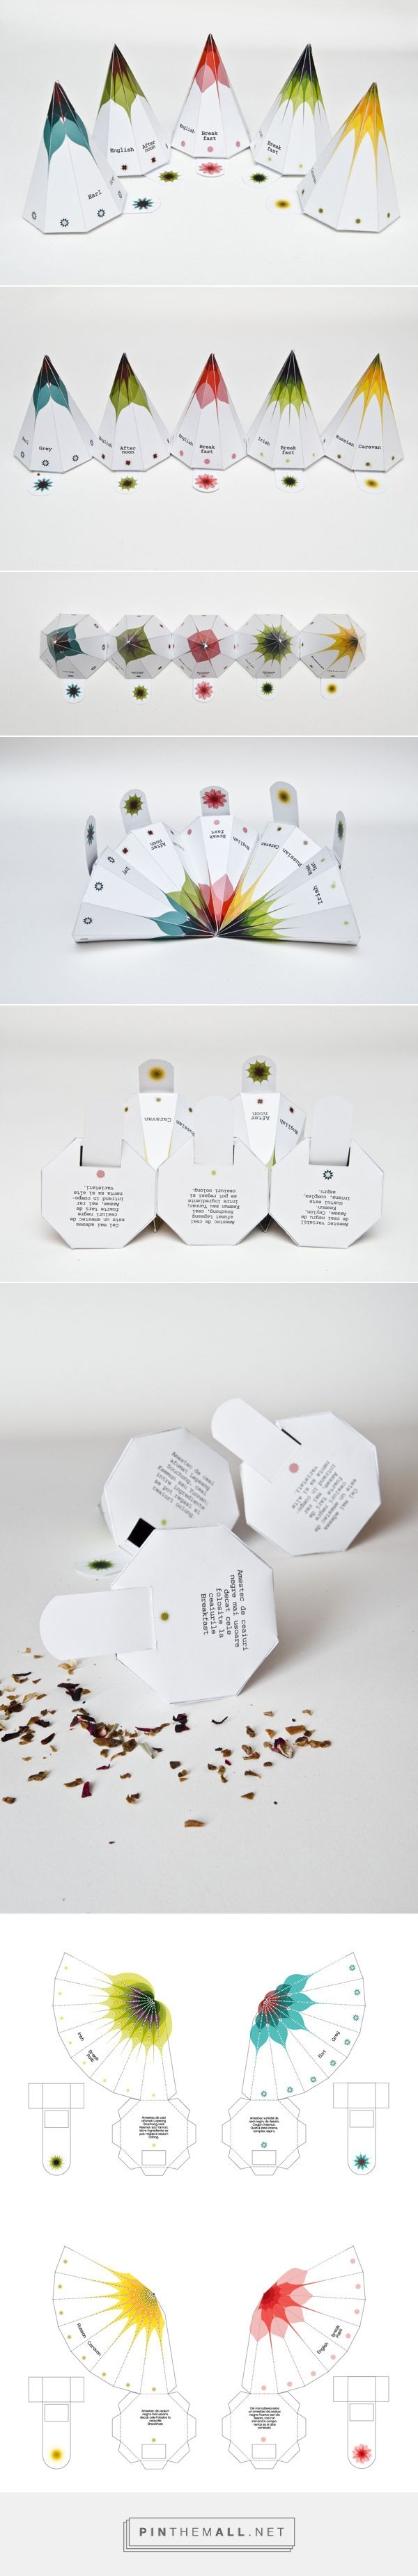 Tea #packaging on Packaging Design Served. An old pin but the 1st time I came across the entire design together curated by Packaging Diva PD created via http://www.packagingserved.com/gallery/tea-packaging/5221223